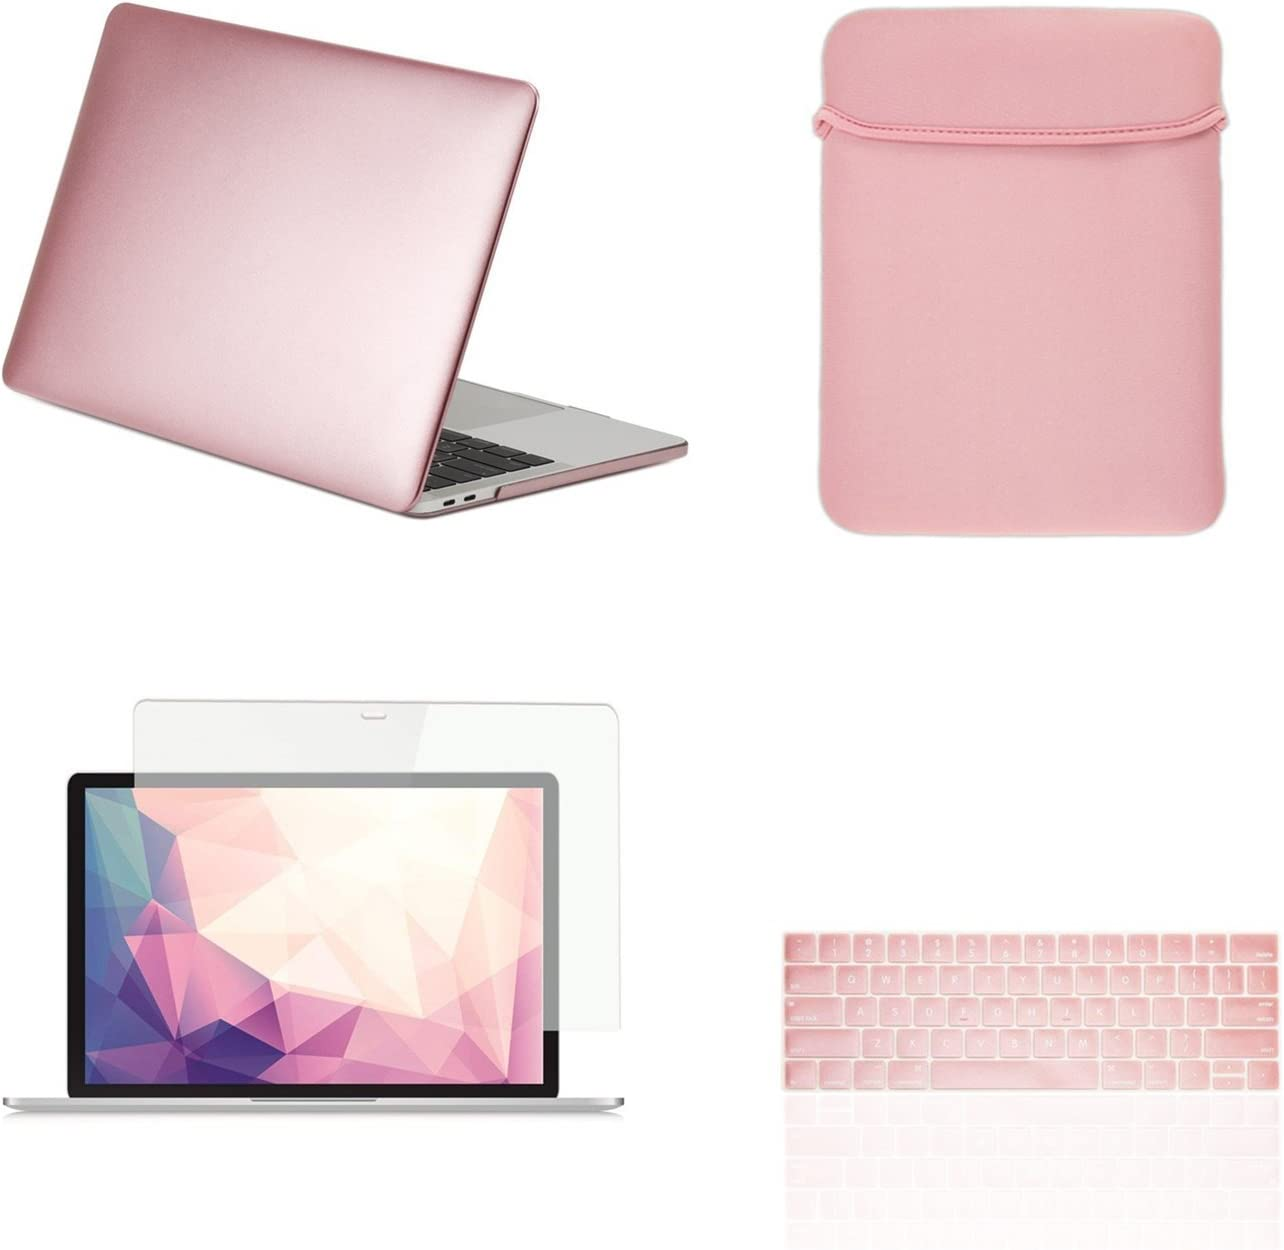 """TOP CASE MacBook Pro 13 inch Case 2019 2018 2017 2016 Release A2159 A1989 A1706 A1708, 4 in 1 Essential Rubberized Hard Case, Keyboard Cover, Screen Protector, Sleeve for MacBook Pro 13"""" - Rose Gold"""